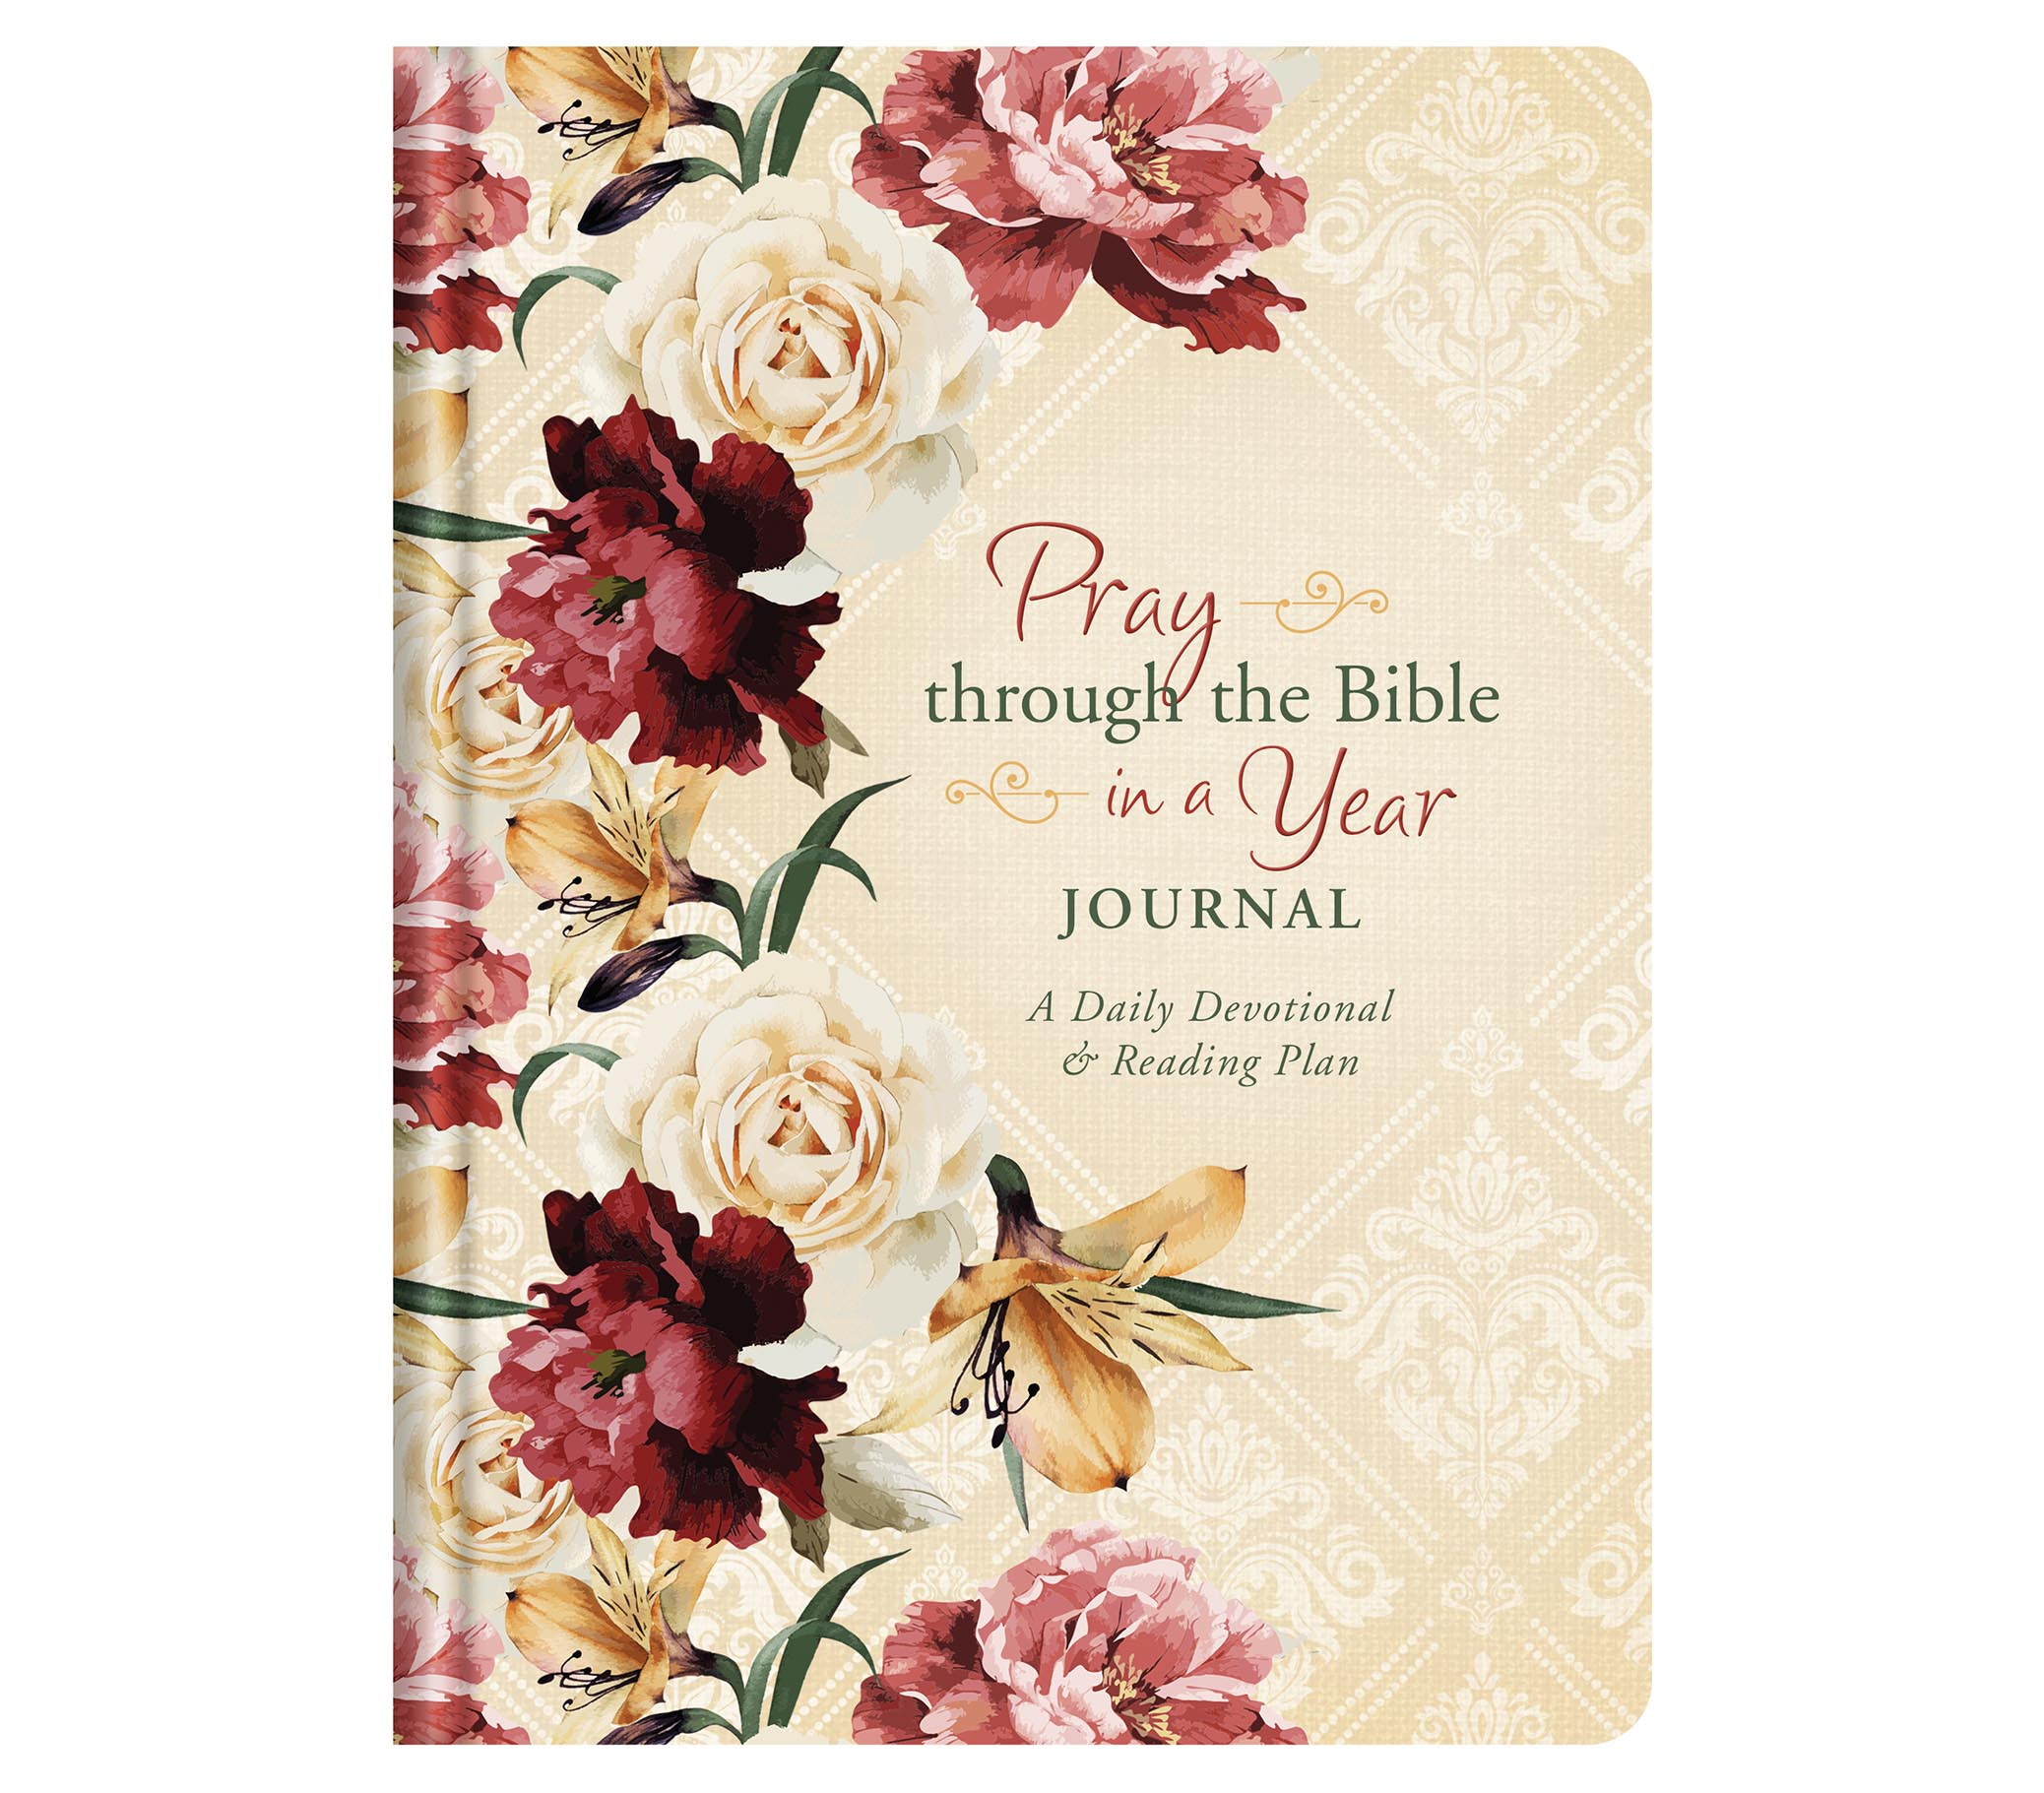 Pray Through the Bible in a Year Journal